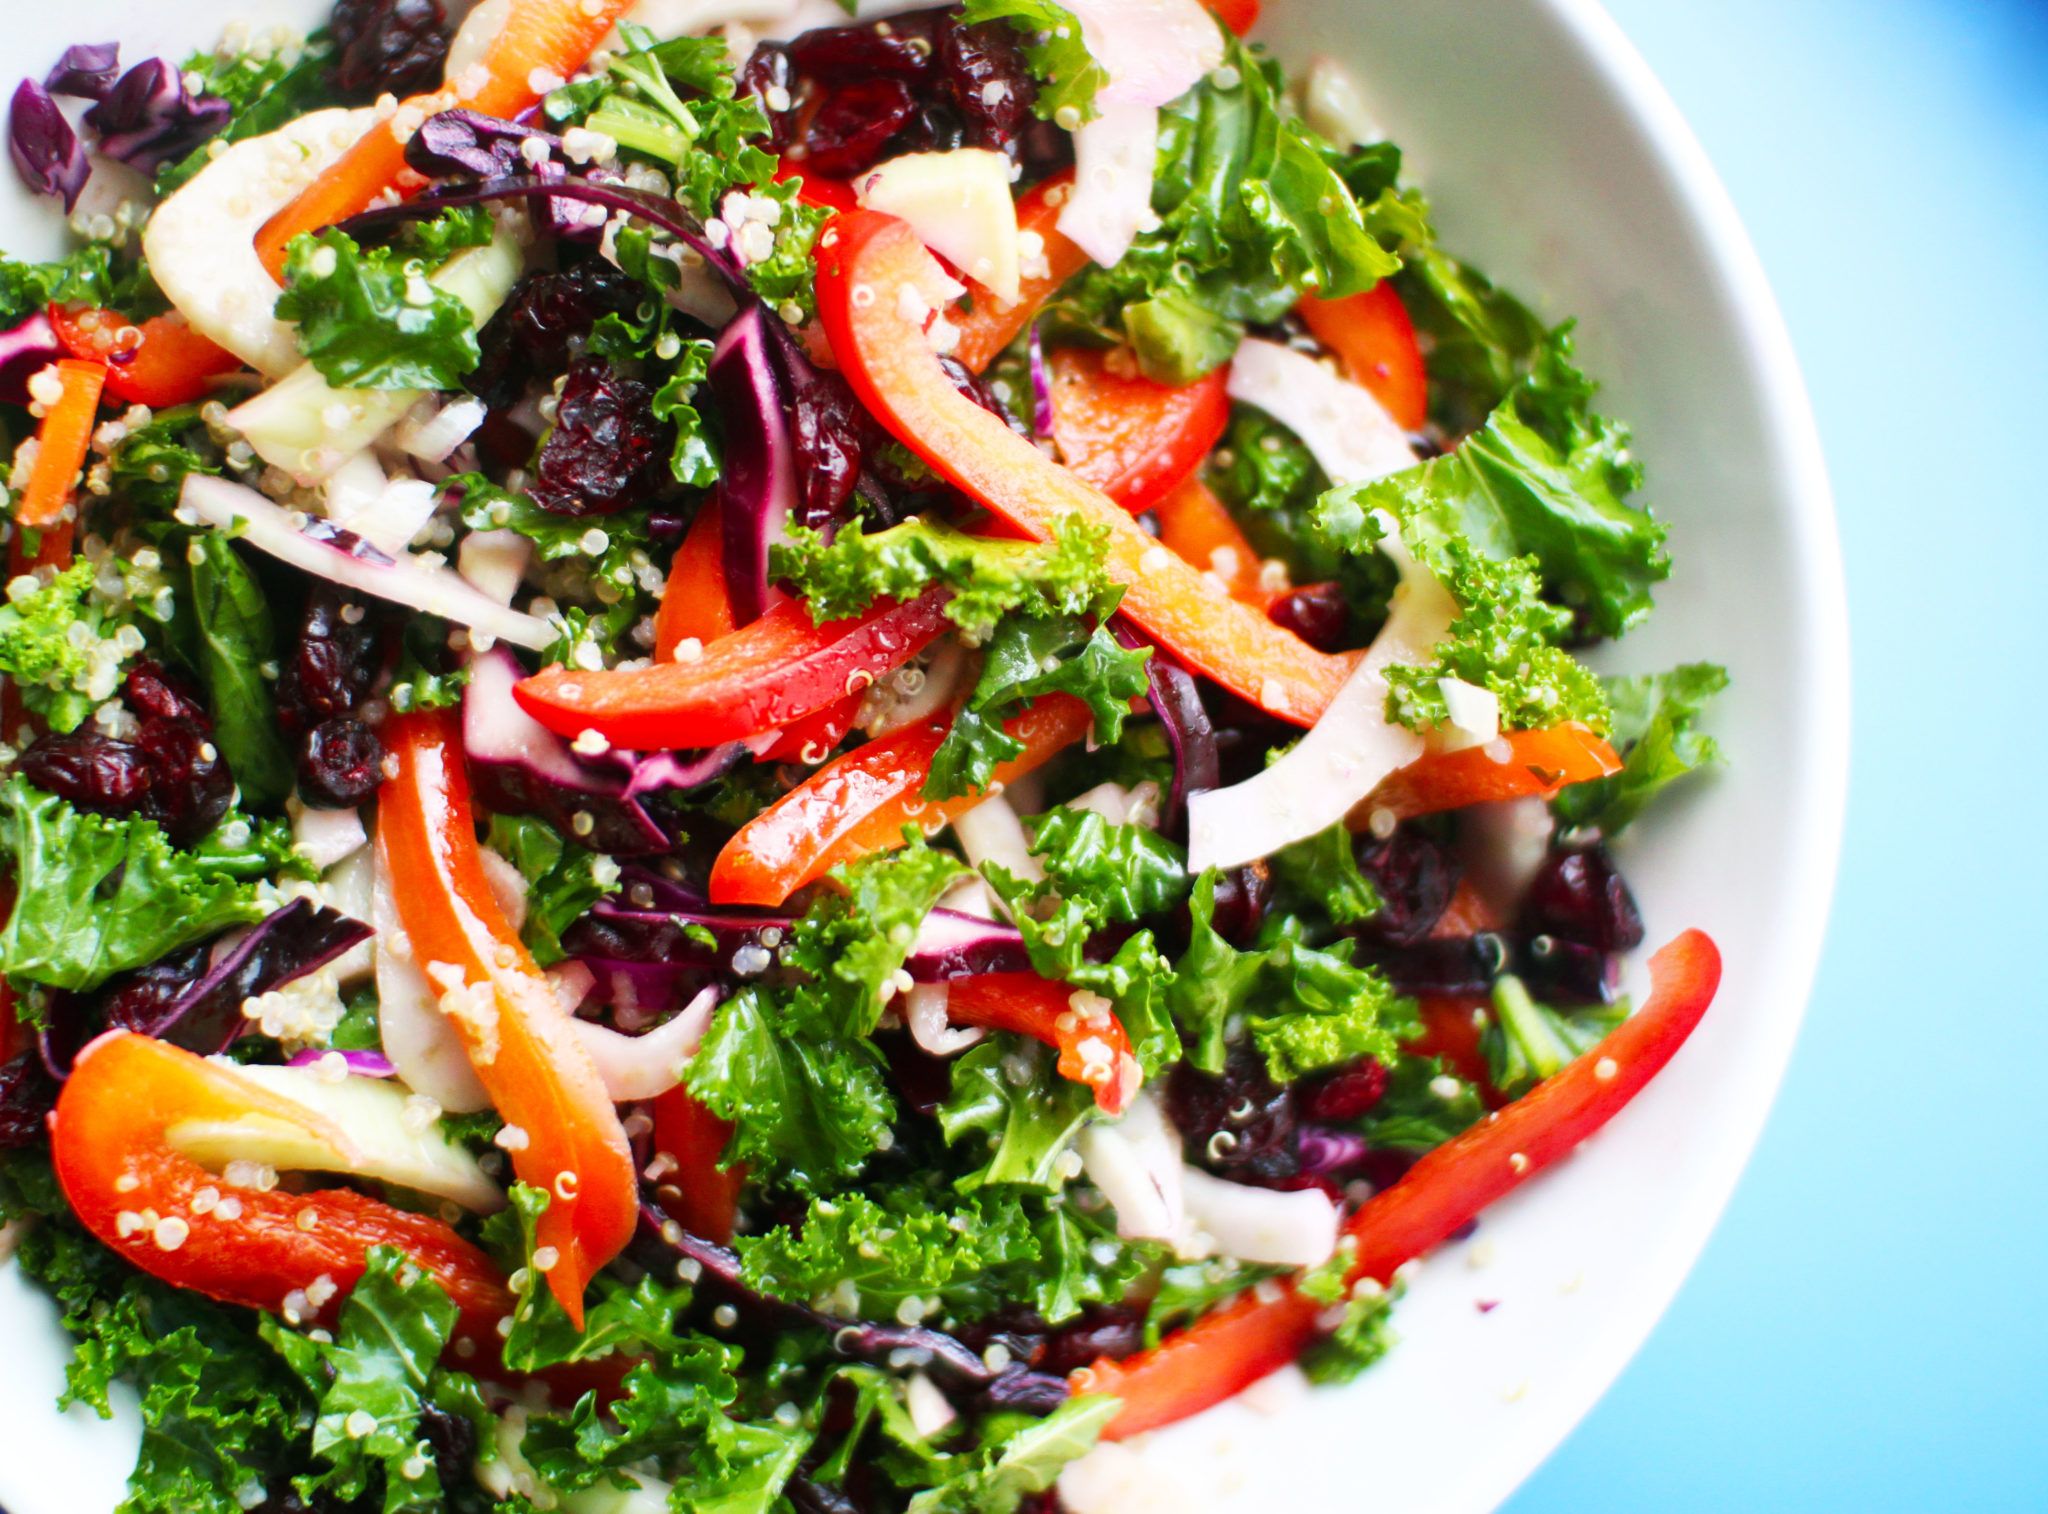 Crunchy Kale Cabbage and Quinoa Salad